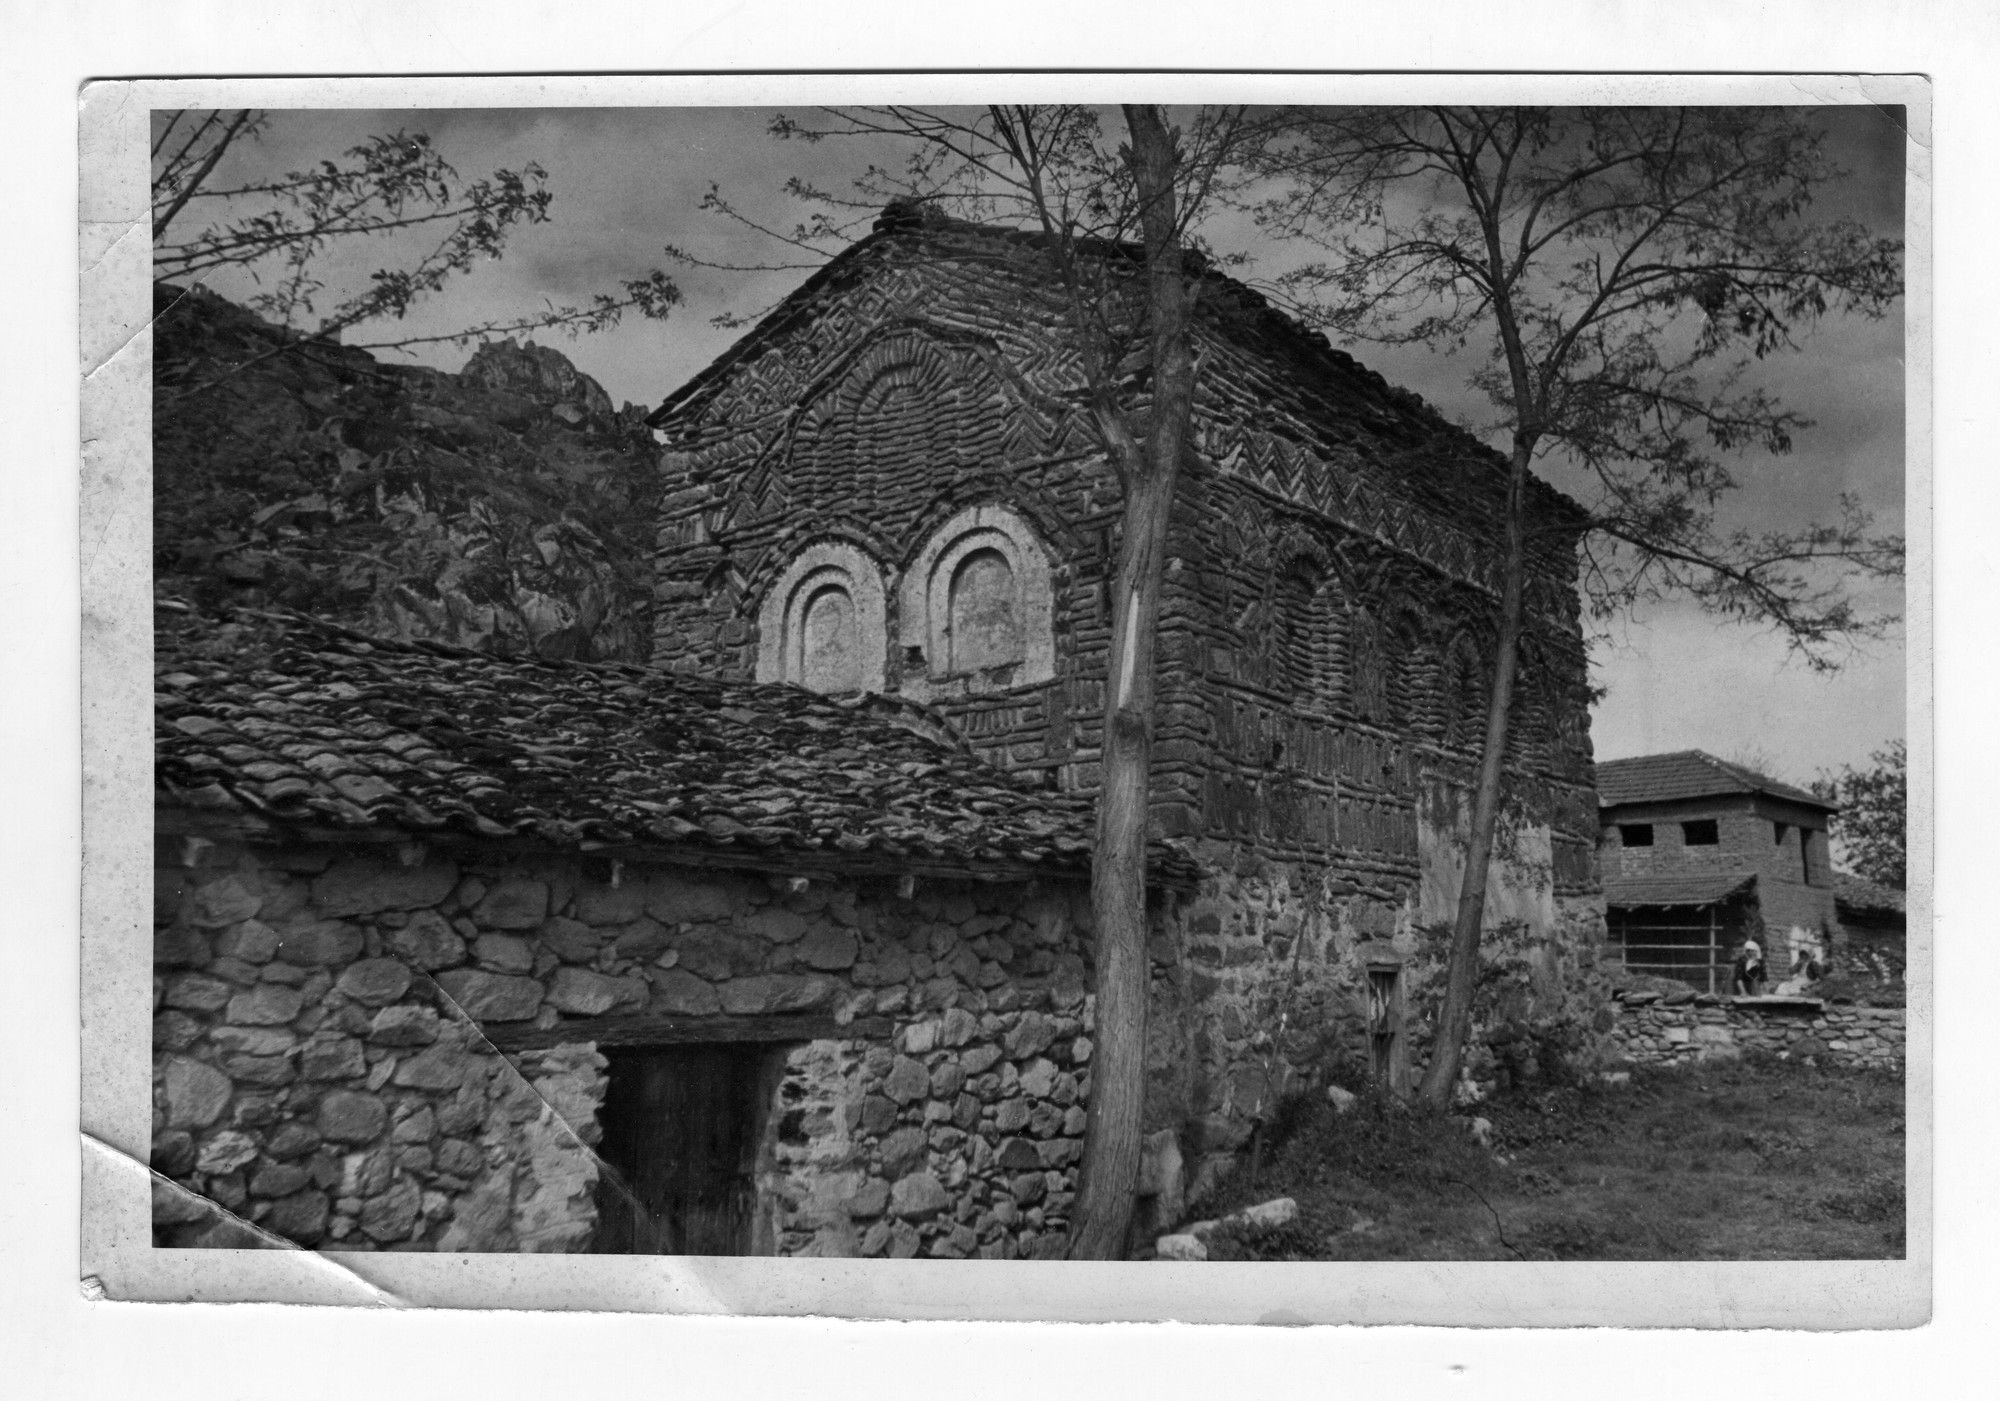 """St. Nikola"" church in the district of Prilep, © Institute for Ethnology and Folklore Studies with Ethnographic Museum - AEIM, BAS"